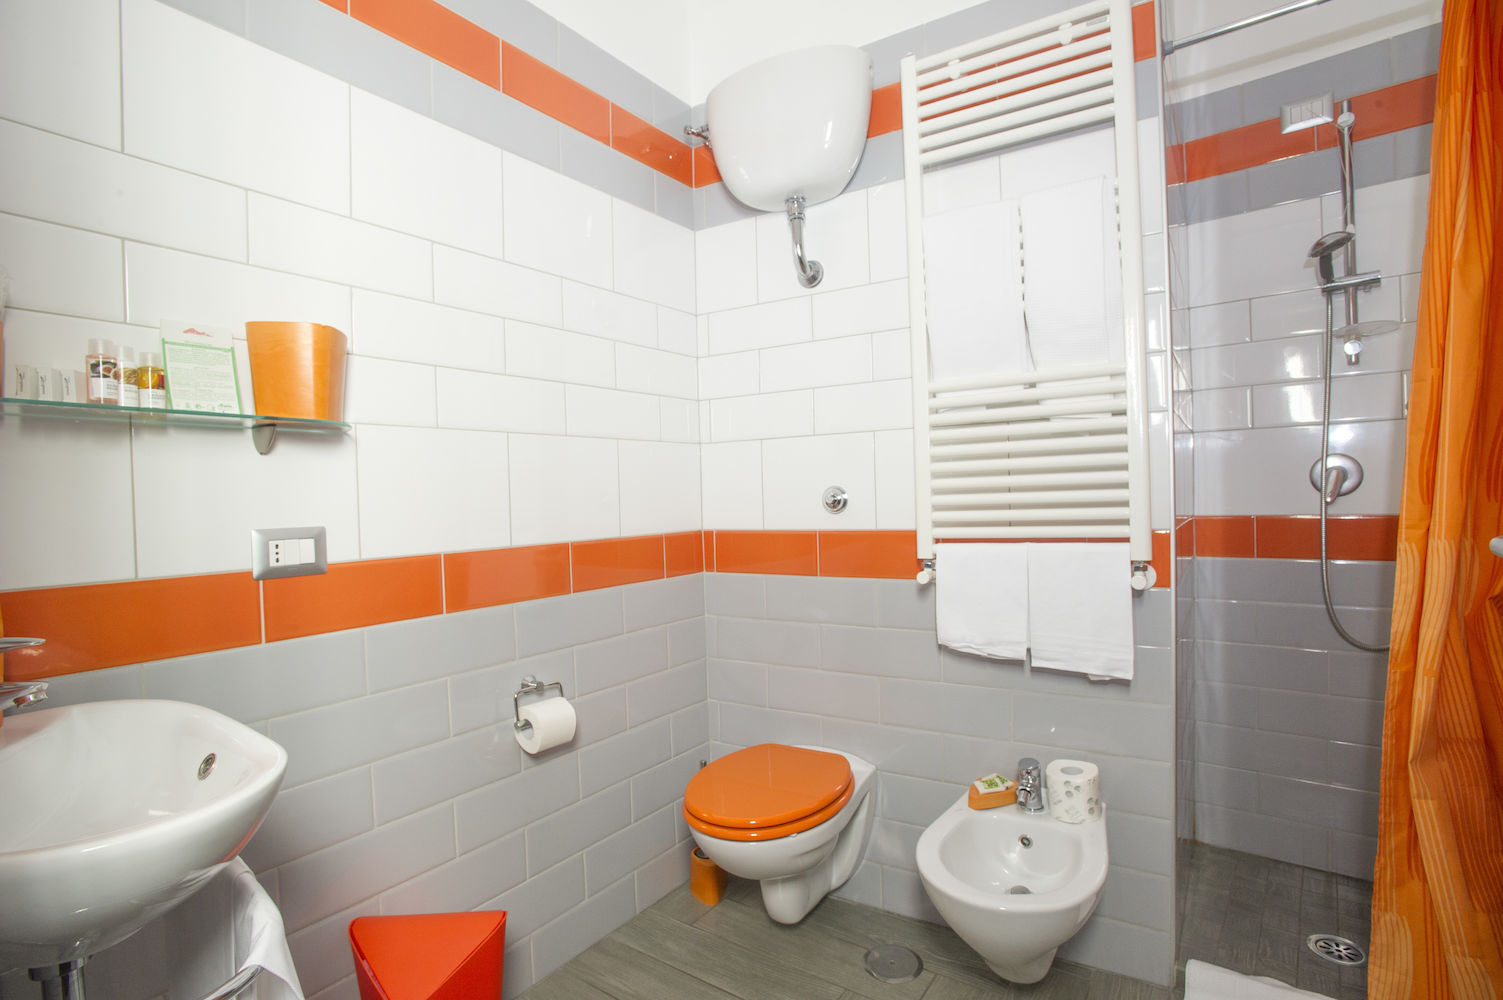 Bed and Breakfast Eco Pompei, standard triple orange room.